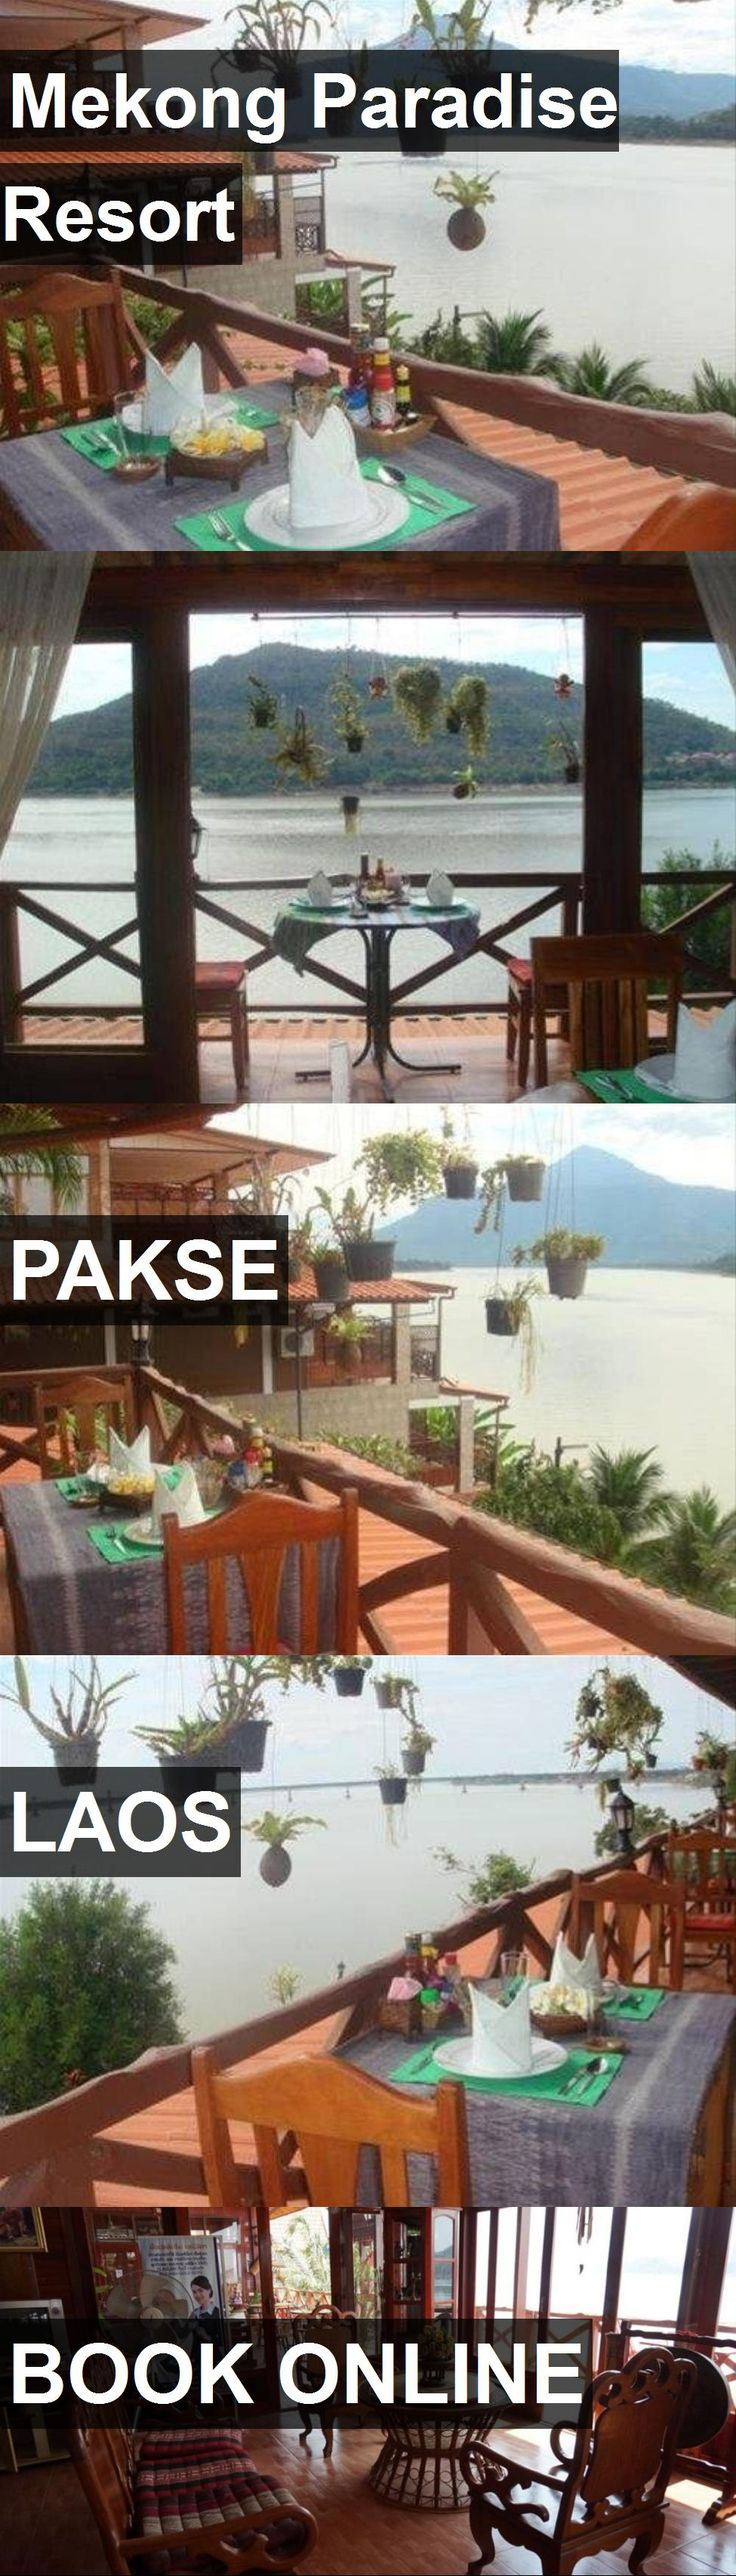 Hotel Mekong Paradise Resort in Pakse, Laos. For more information, photos, reviews and best prices please follow the link. #Laos #Pakse #travel #vacation #hotel